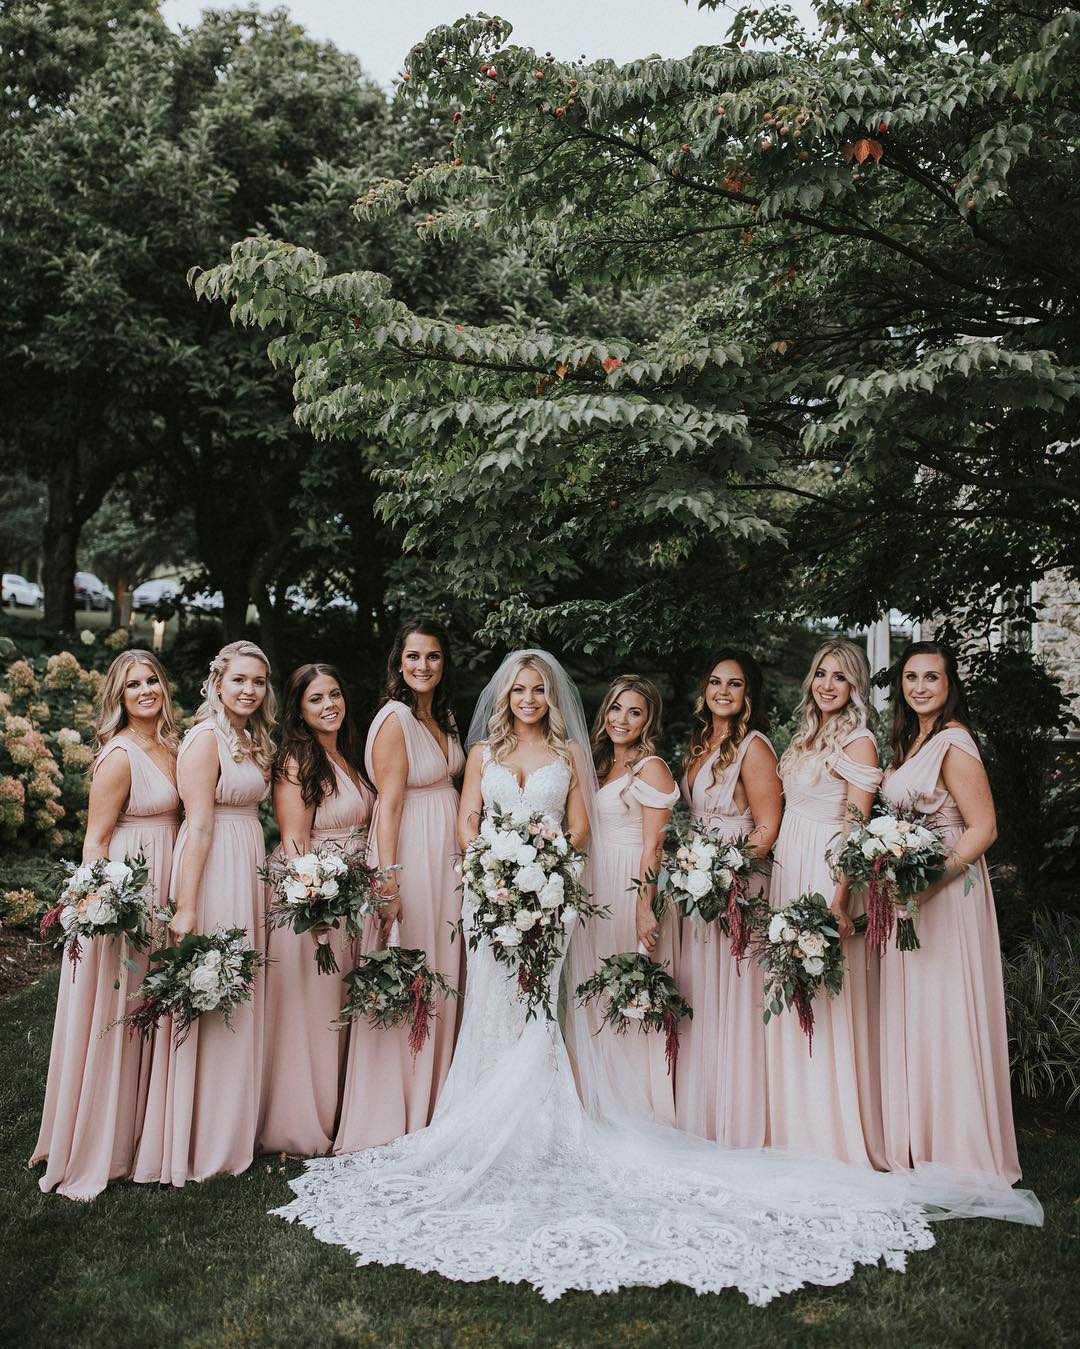 19eaf5257836 ... dresses at pick-me-up prices for every girl in your bridal squad! Shop  the Wedding Collection or shop a few of our most-loved bridesmaid dresses  below.